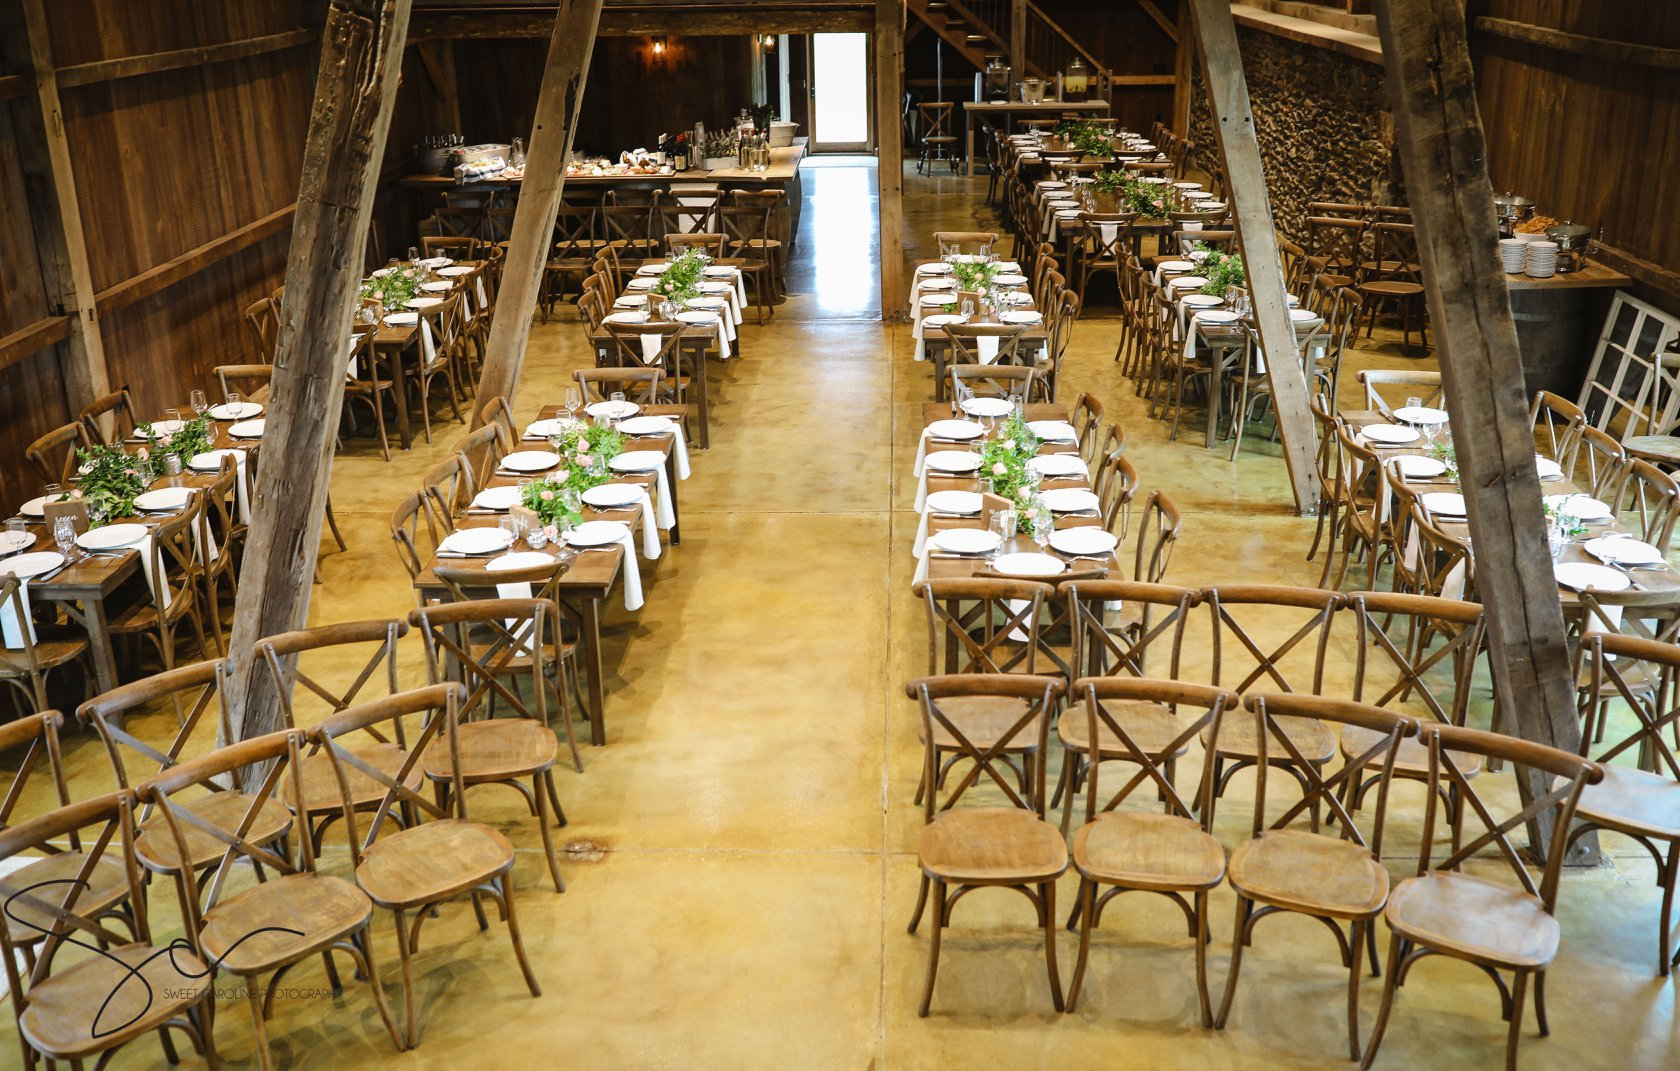 Heartstone Barn at Kalero Vineyard  event space at Kalero Vineyard in New York City, NYC, NY/NJ Area